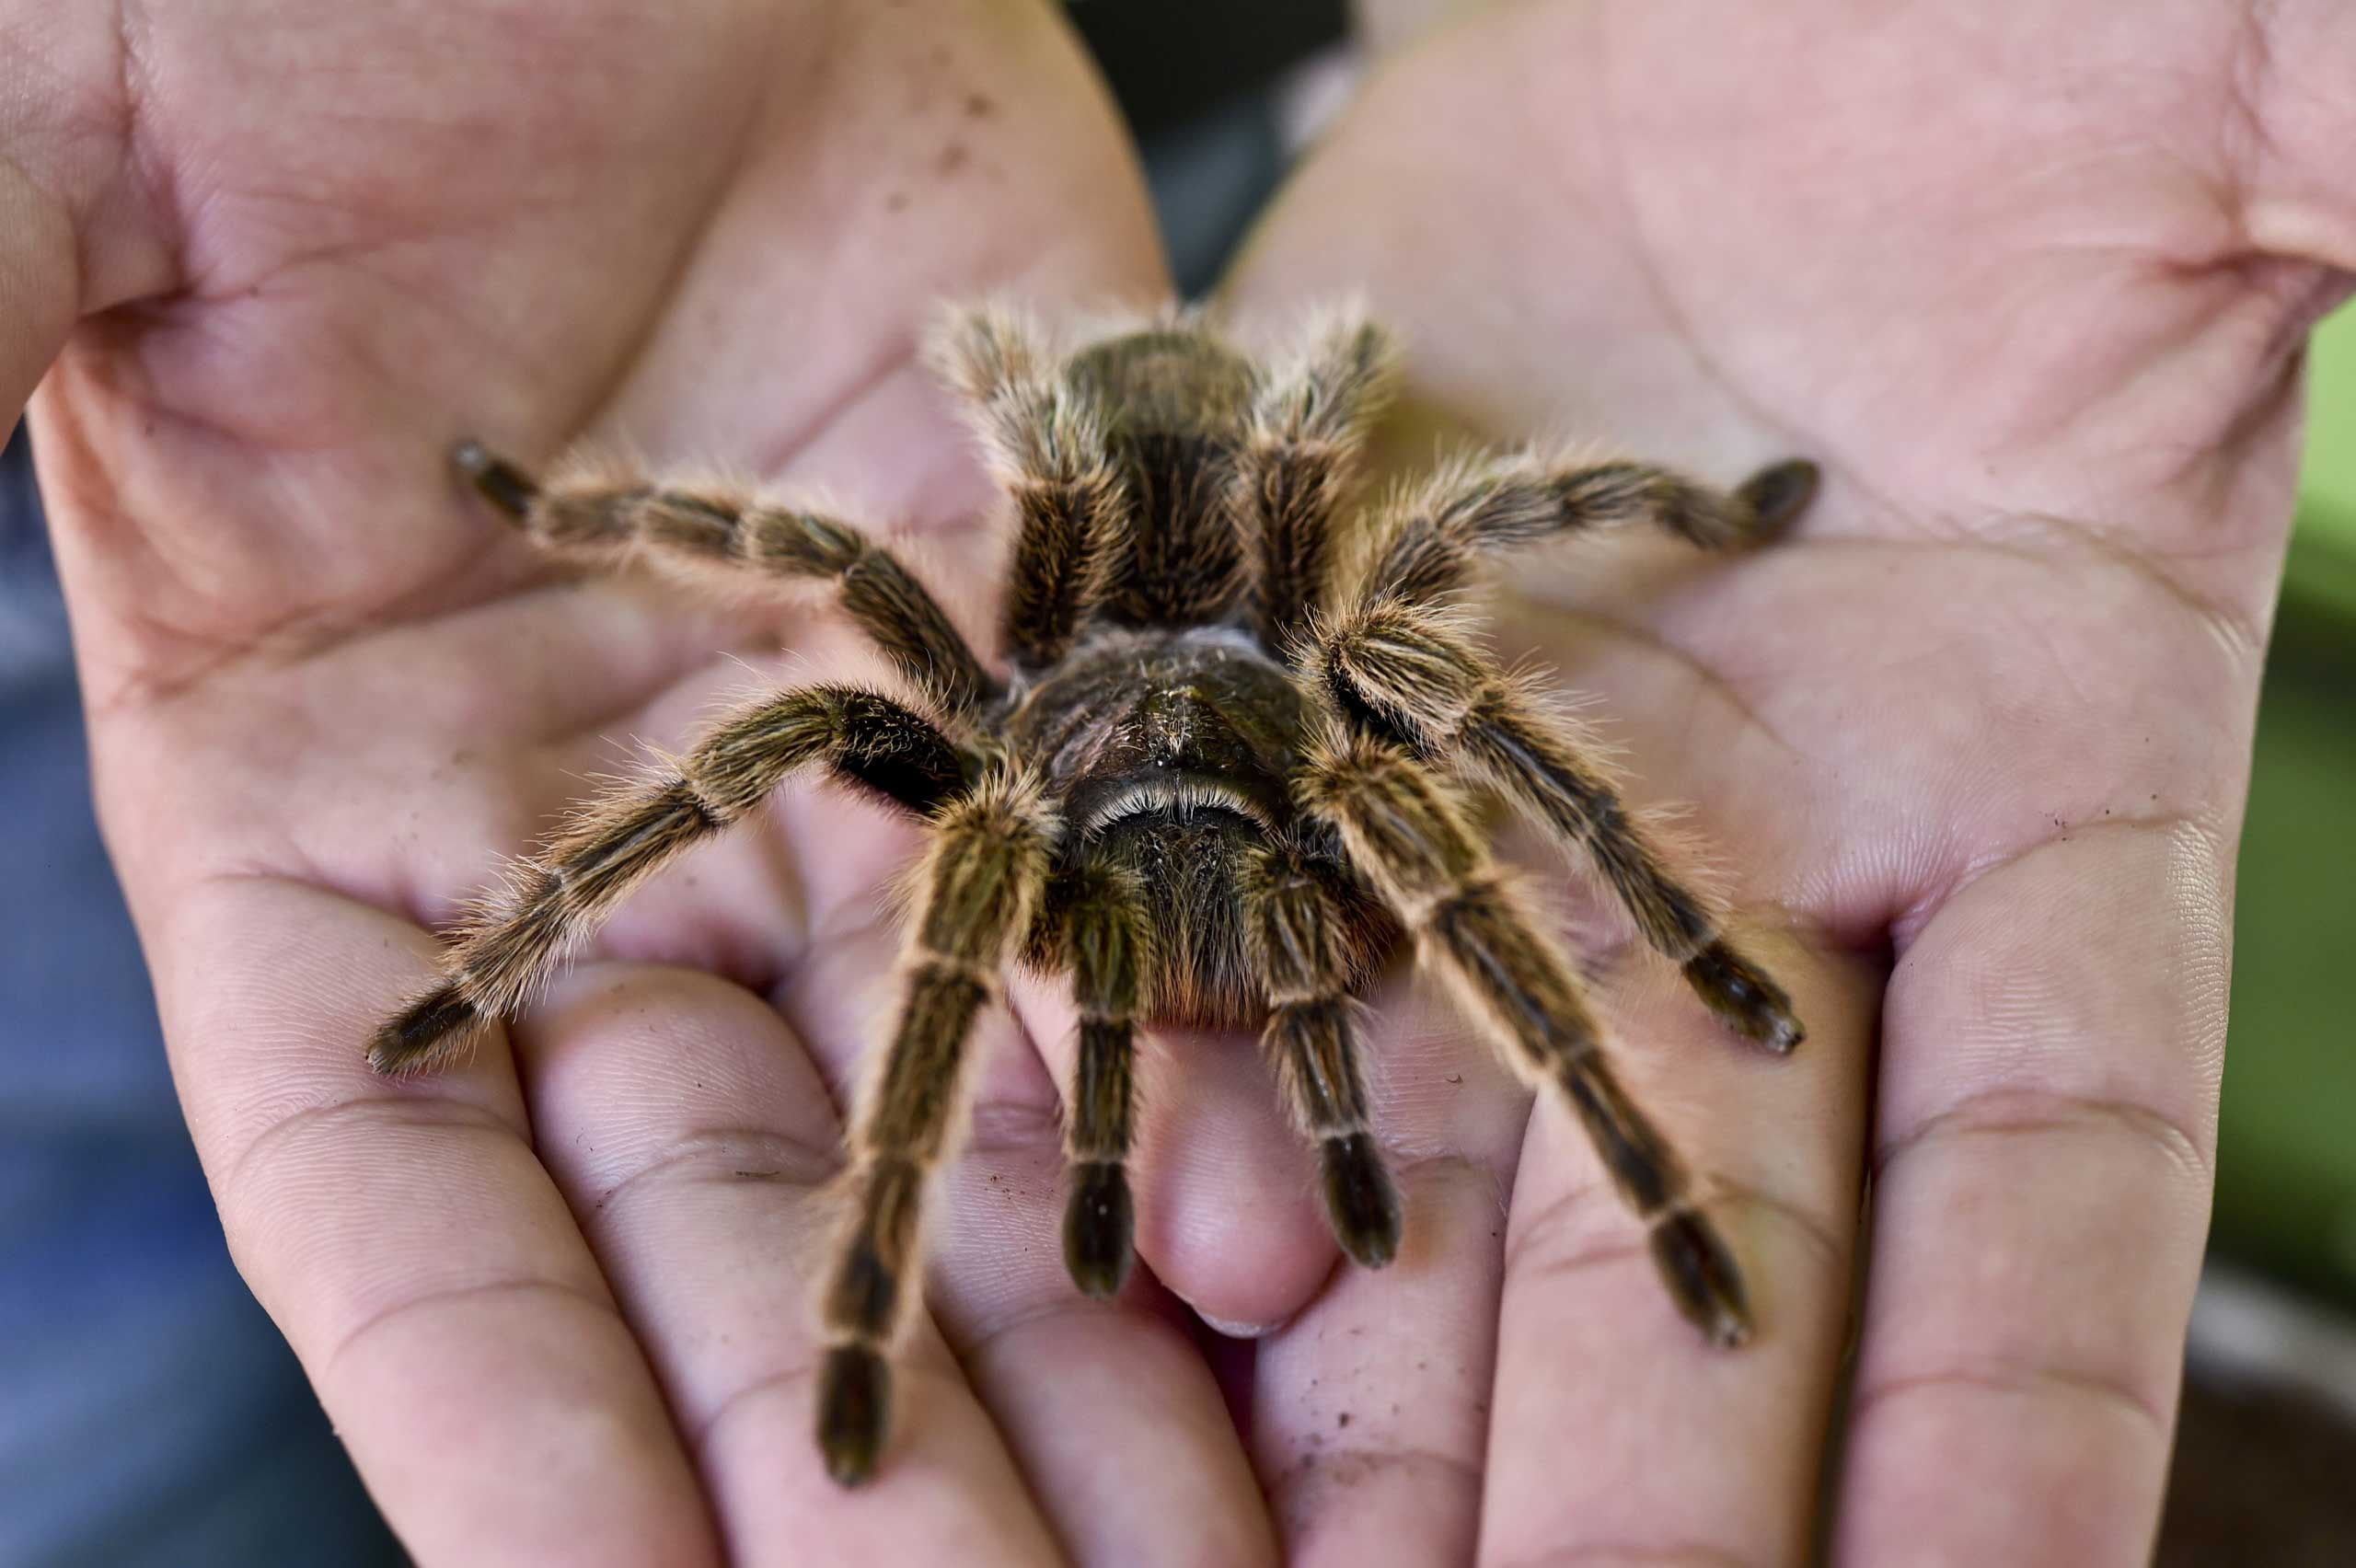 A worker of the Chapultepec Zoo shows a pink tarantula (Grammostola Rosea) on March 19, 2015 in Mexico City.